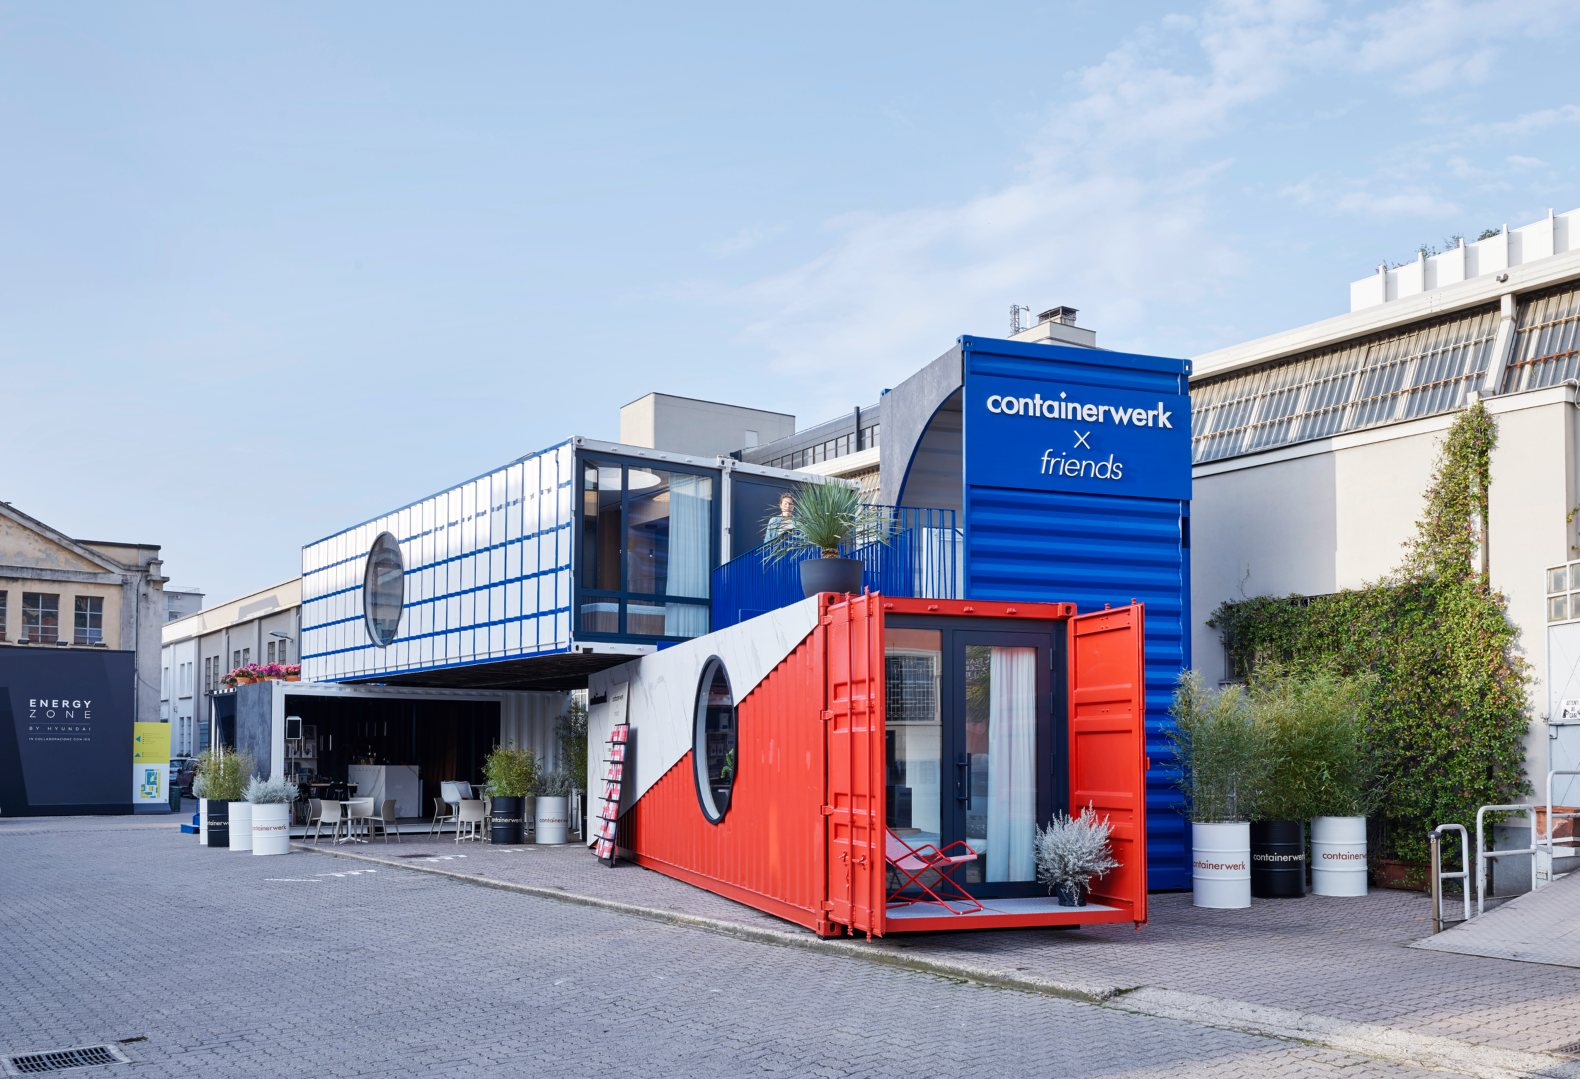 Container Haus Modern Containerwerk Converts Old Shipping Containers Into Gorgeous Homes